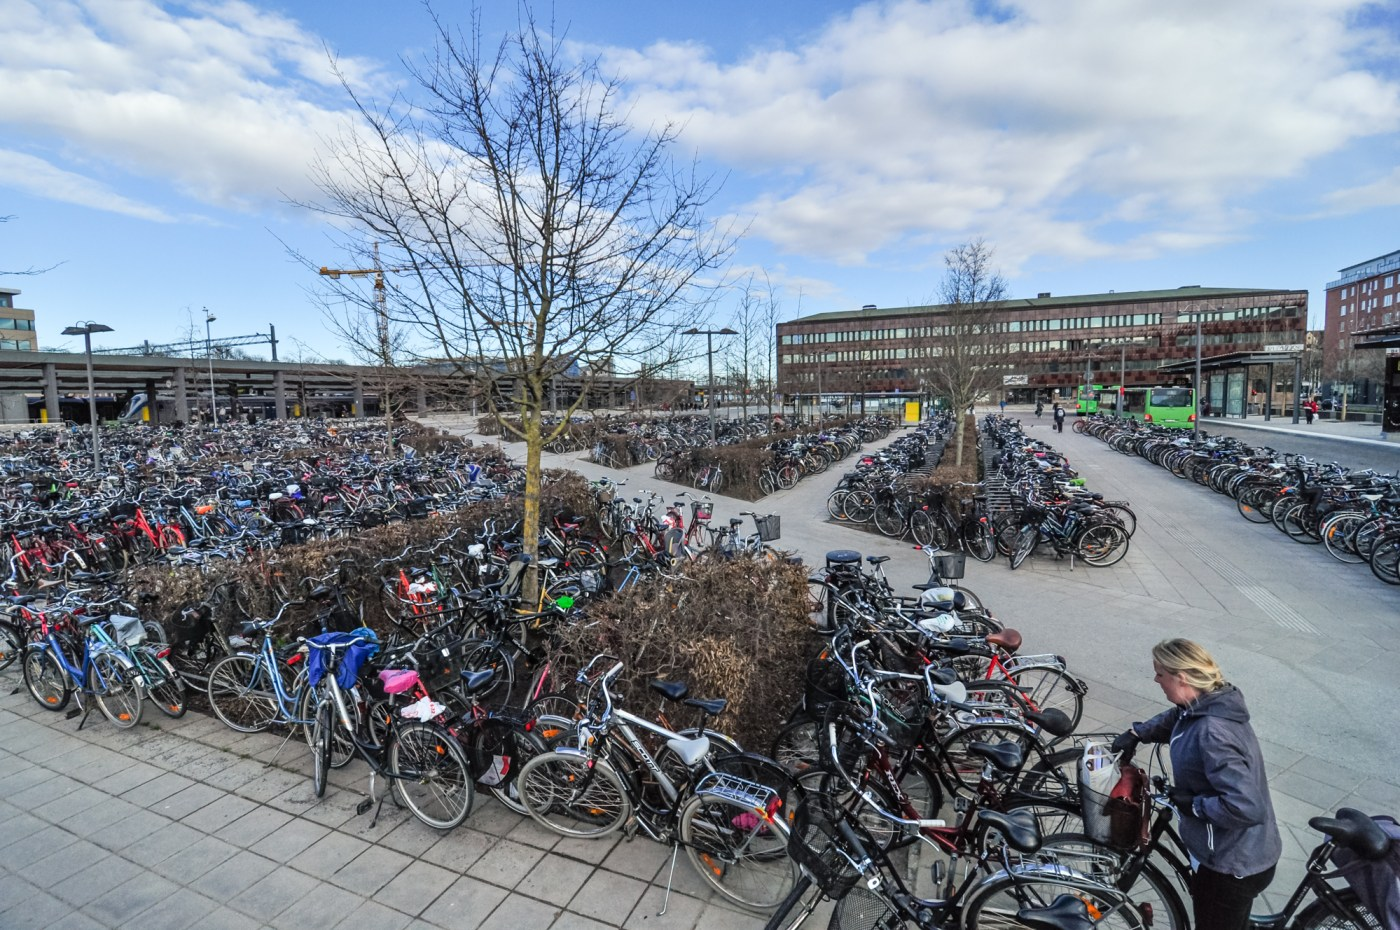 Bicycle parking in Sweden